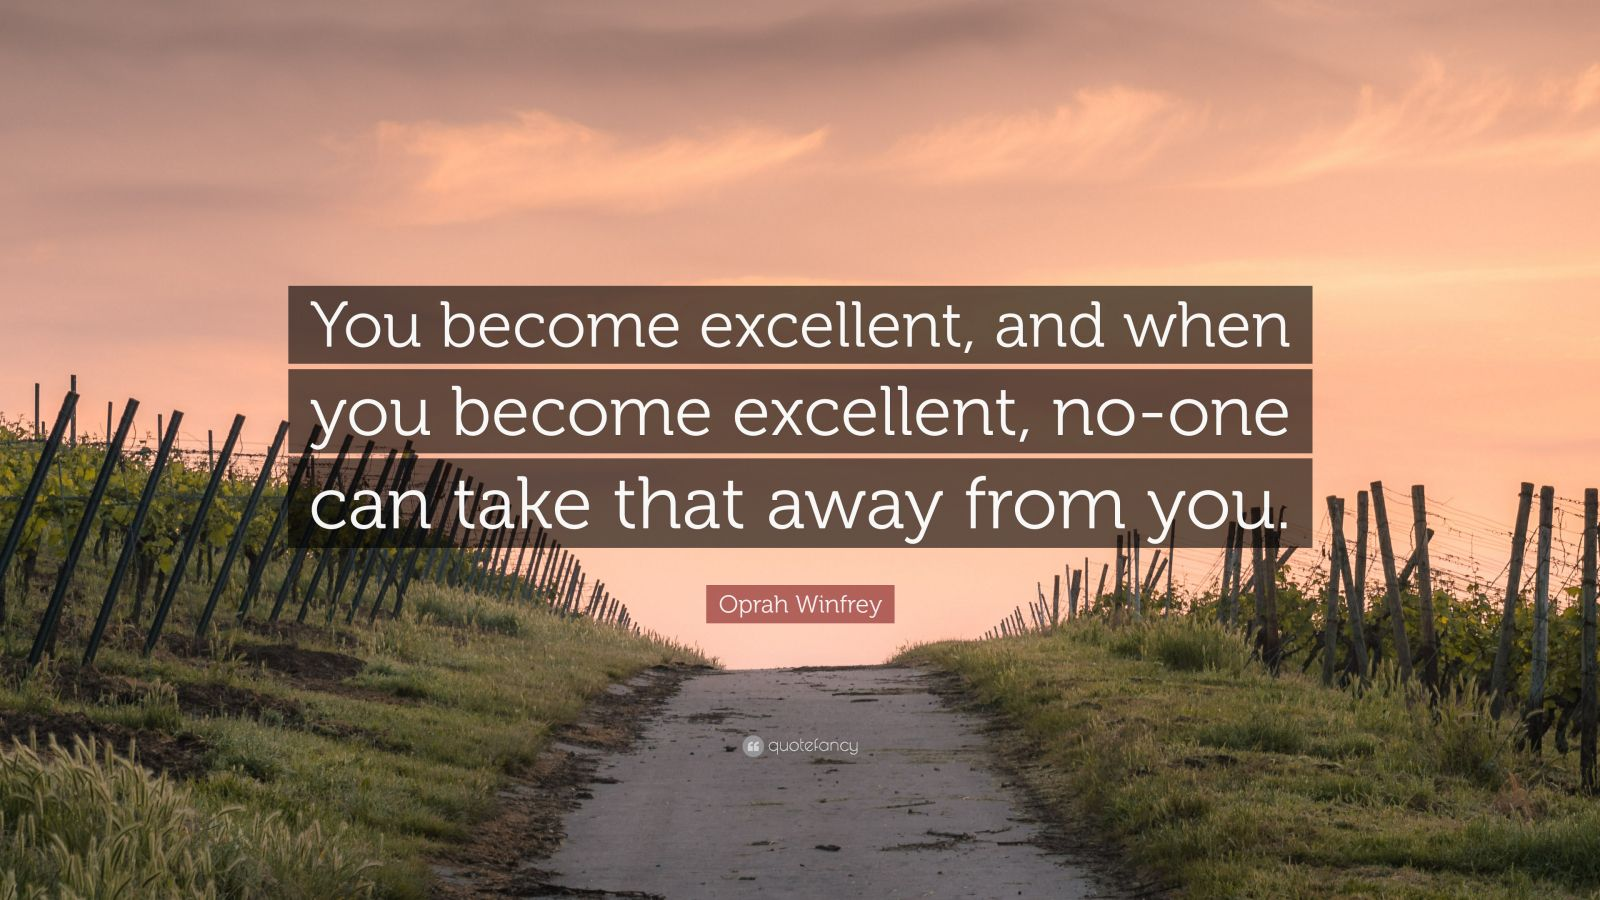 """Oprah Winfrey Quote: """"You become excellent, and when you become excellent, no-one can take that away from you."""""""